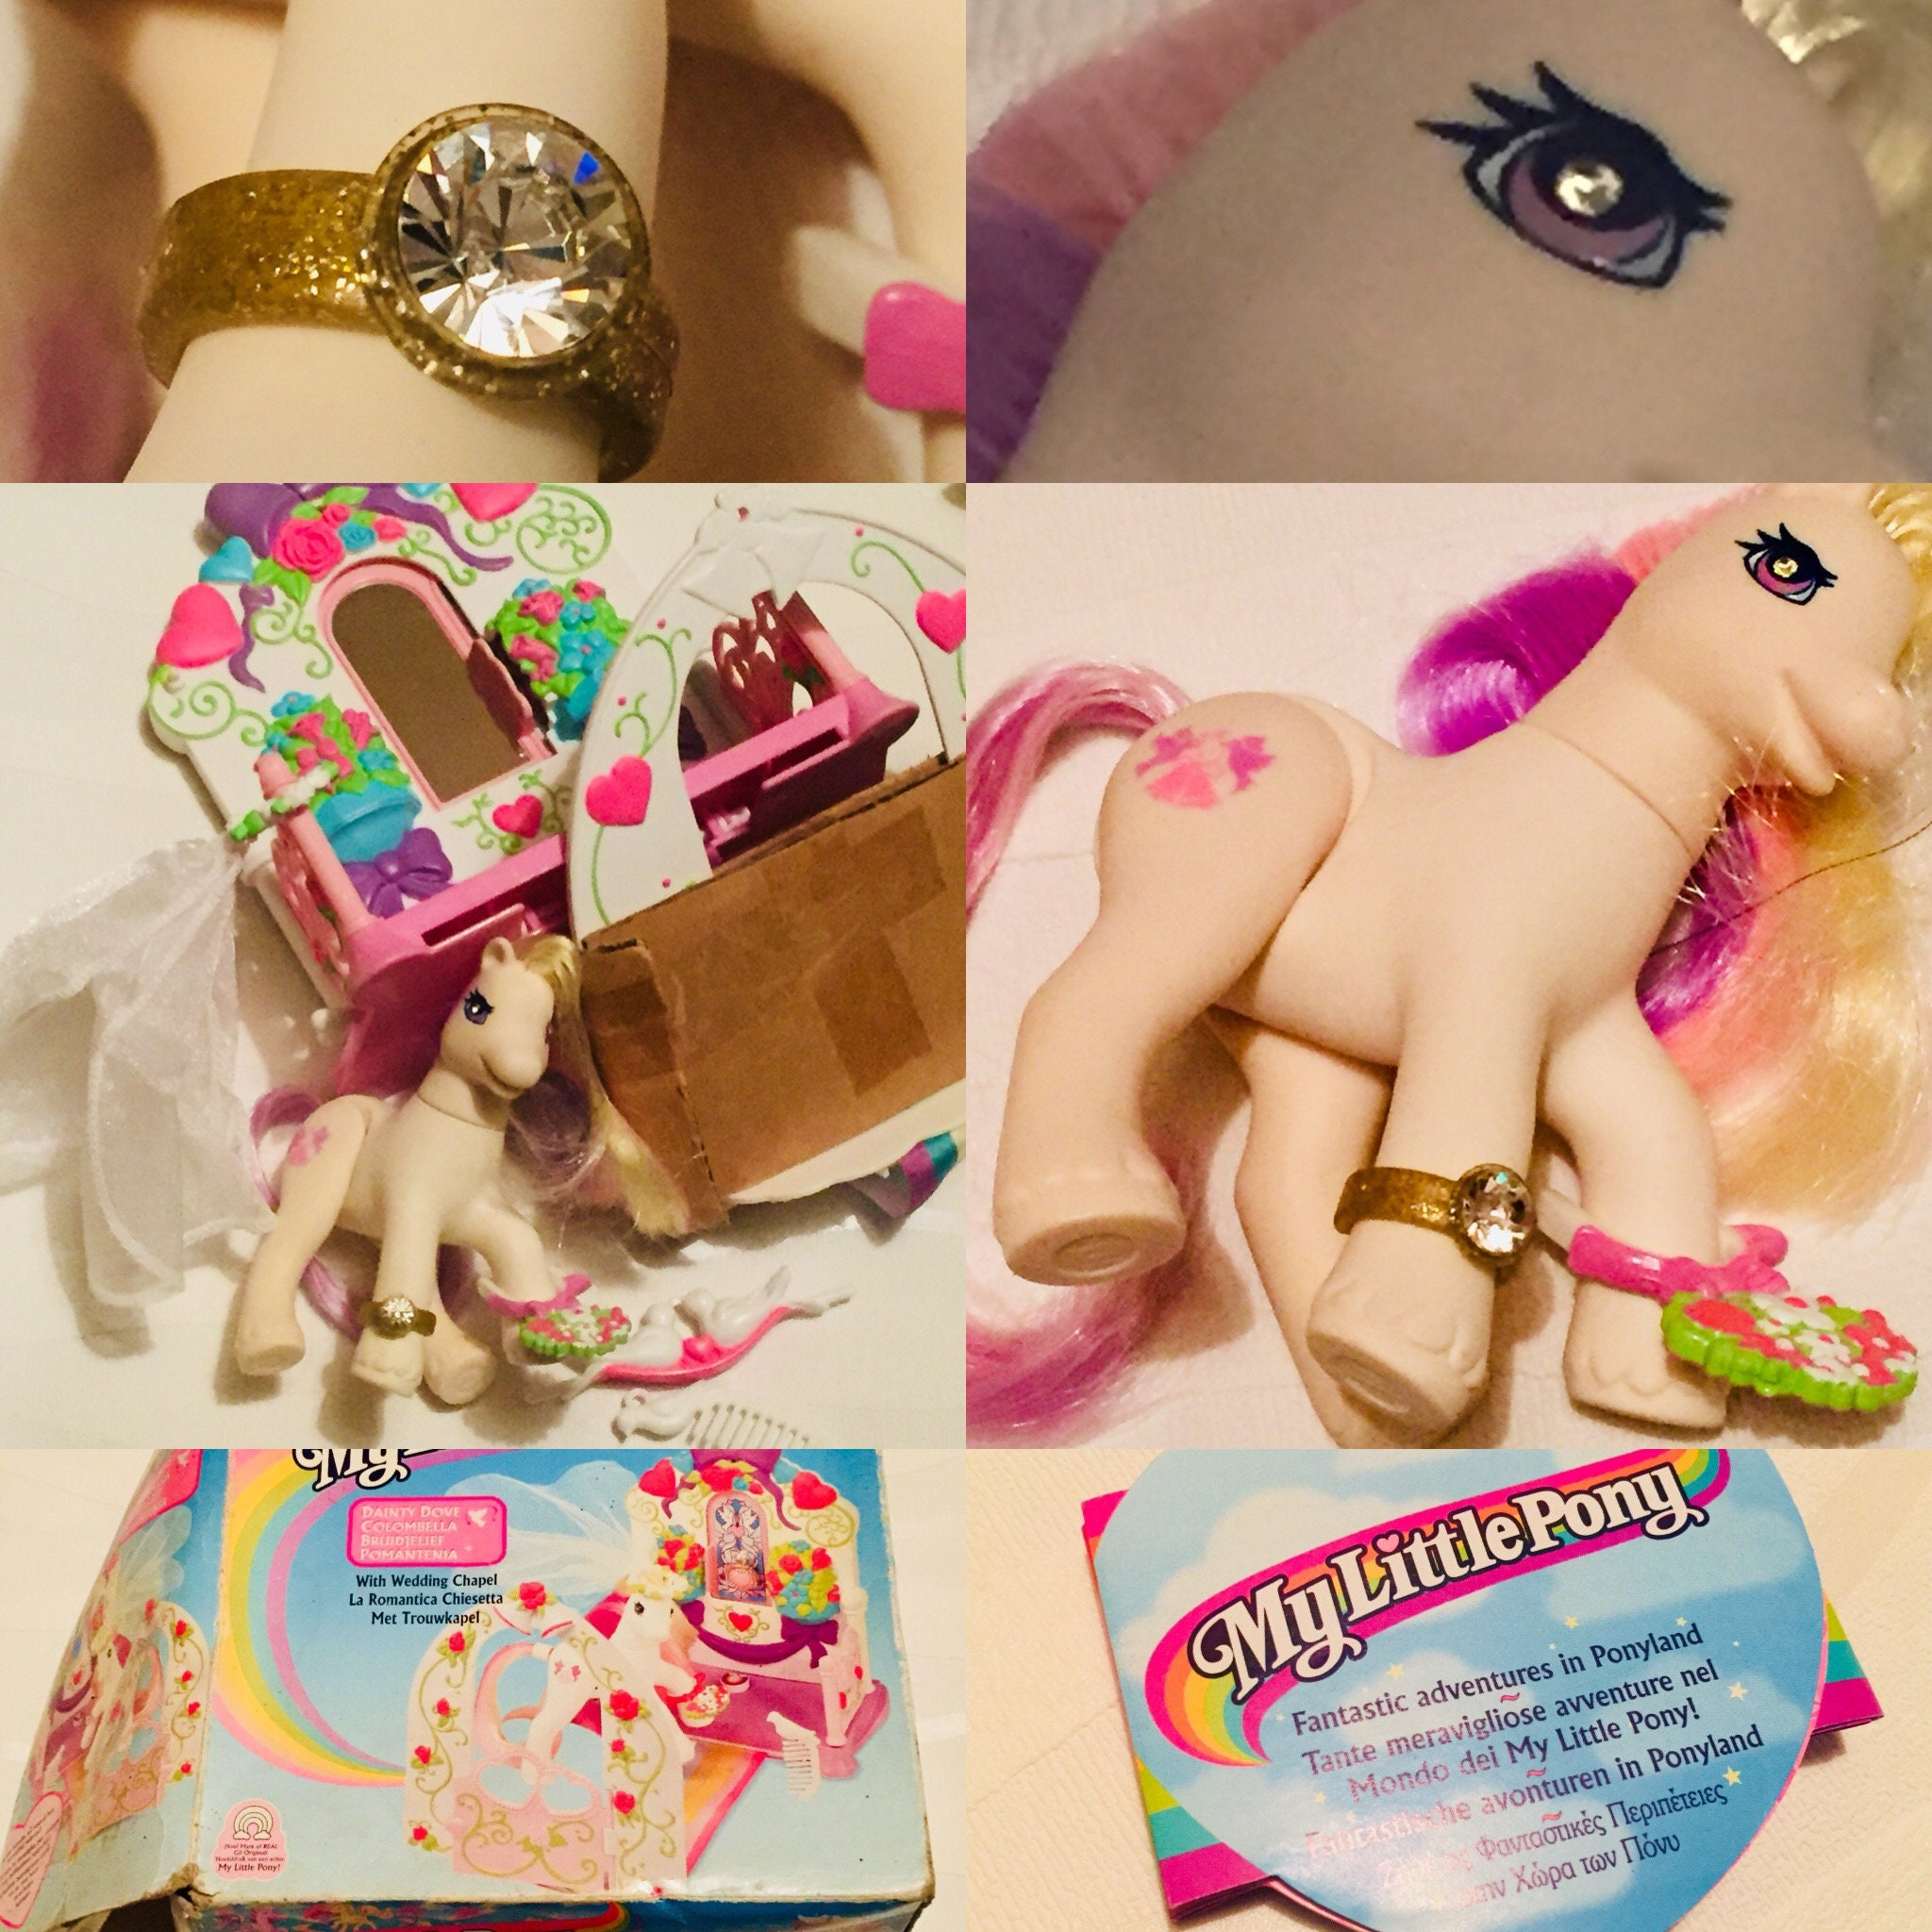 G2 My Little Pony Dainty Dove And Wedding Chapel, 1980s, Vintage MLP, Hasbro, New Old Stock